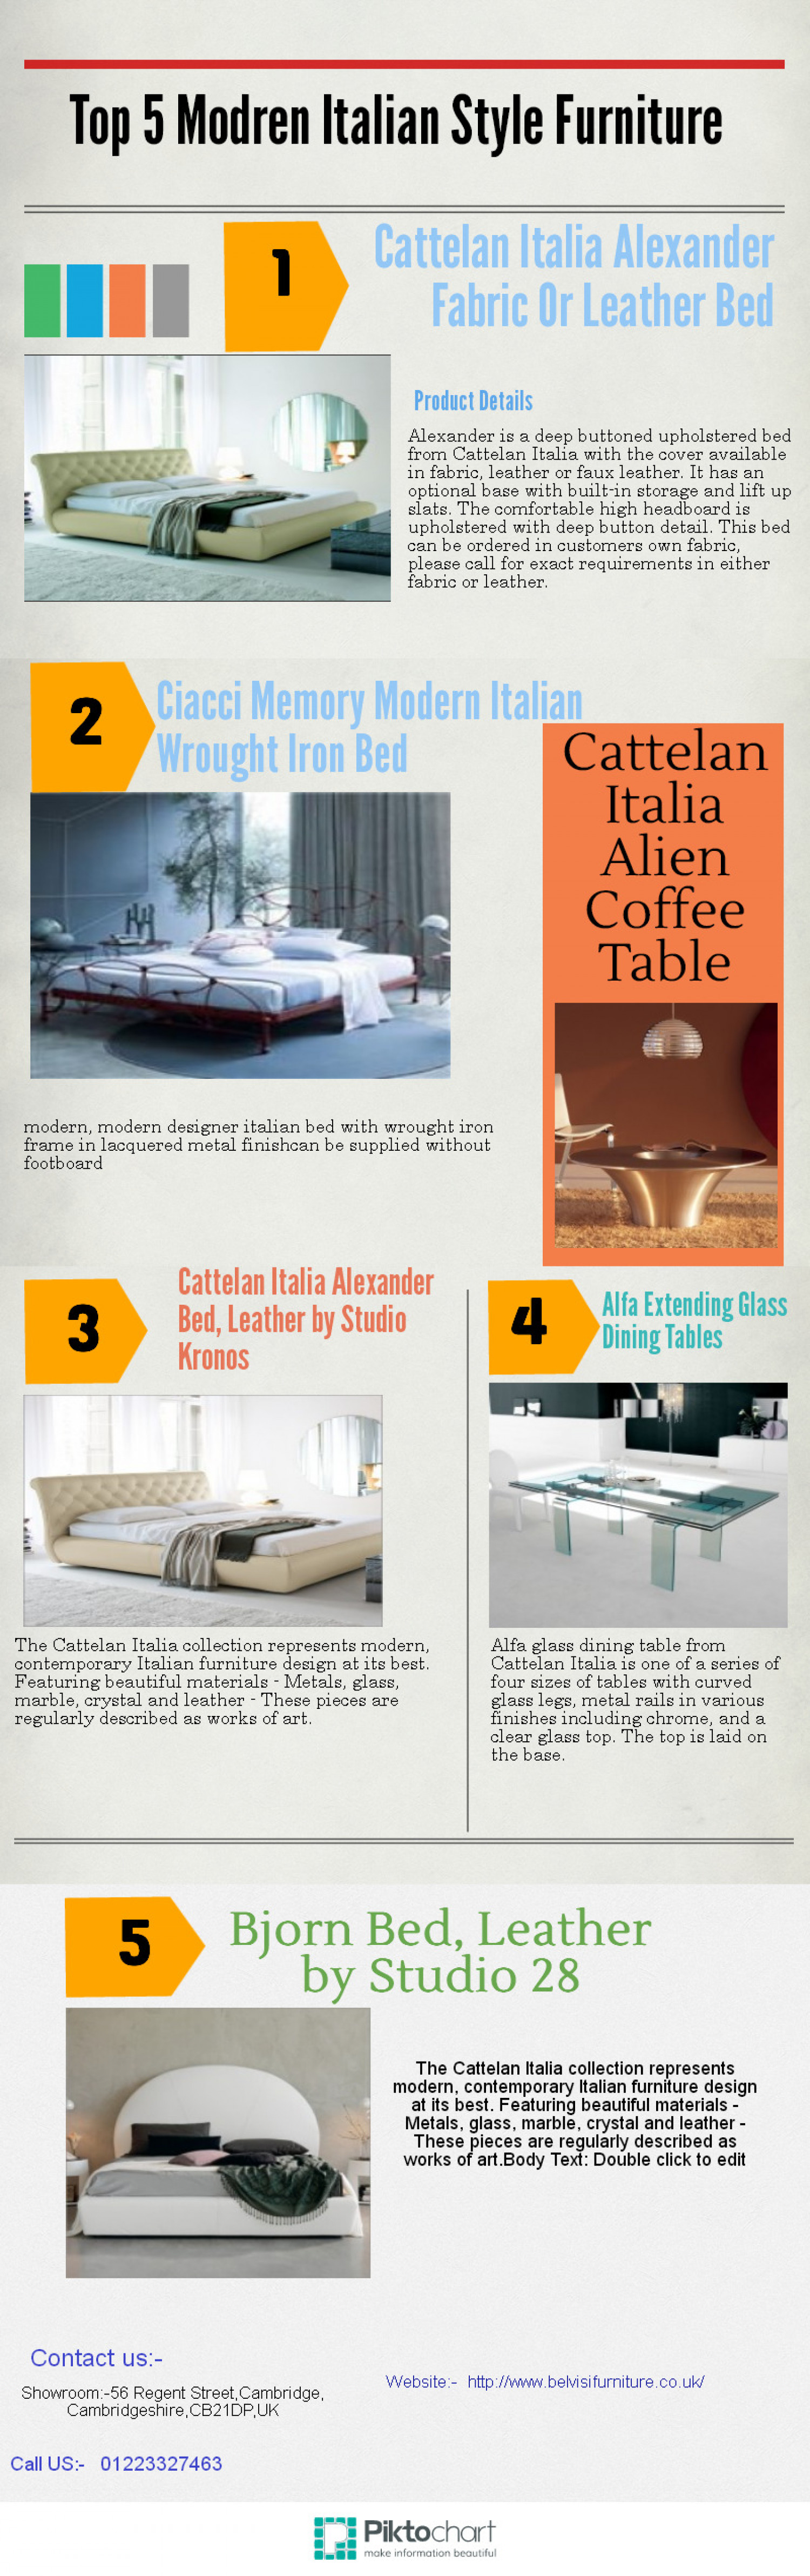 Top 5 Modern Italian Style Furniture Infographic